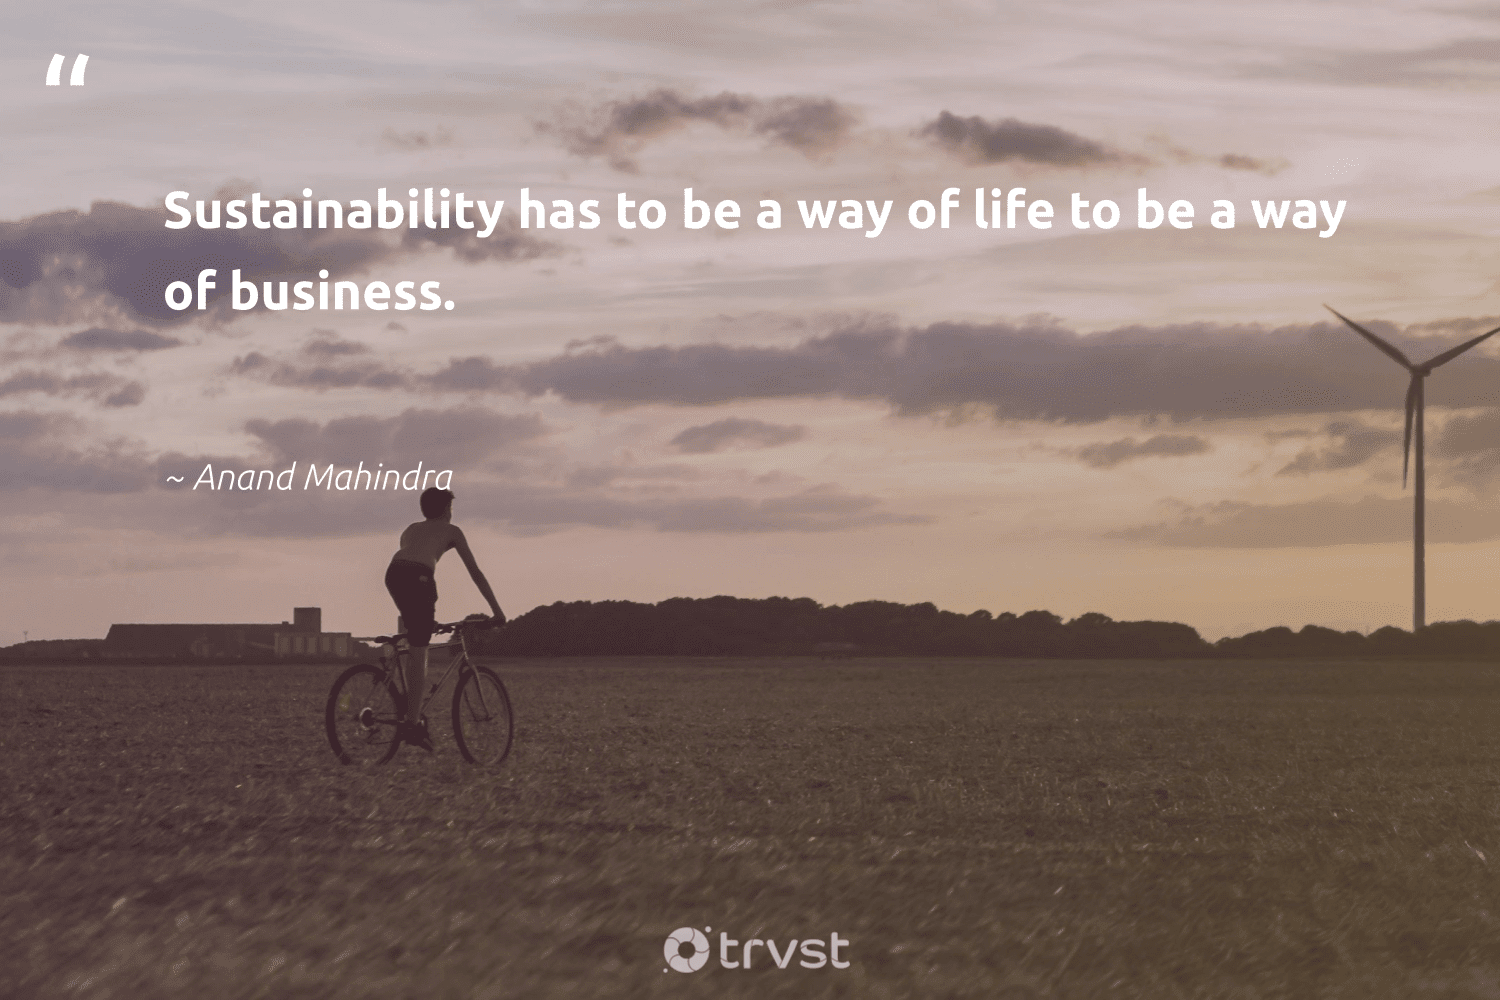 """""""Sustainability has to be a way of life to be a way of business.""""  - Anand Mahindra #trvst #quotes #sustainability #sustainable #green #bethechange #impact #ecofriendly #gogreen #greenliving #ecoconscious #sustainableliving"""